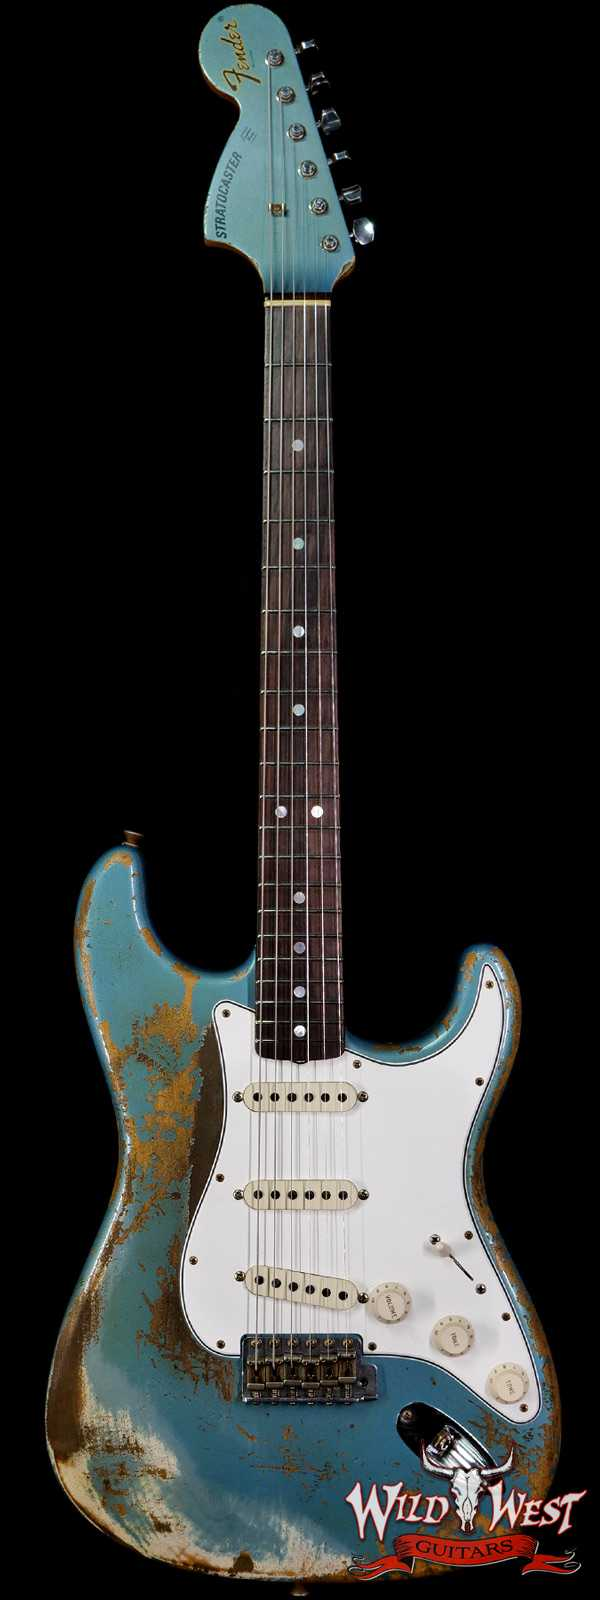 Fender Custom Shop 1969 Stratocaster Super Heavy Relic Reverse Matching Headstock Blue Agave